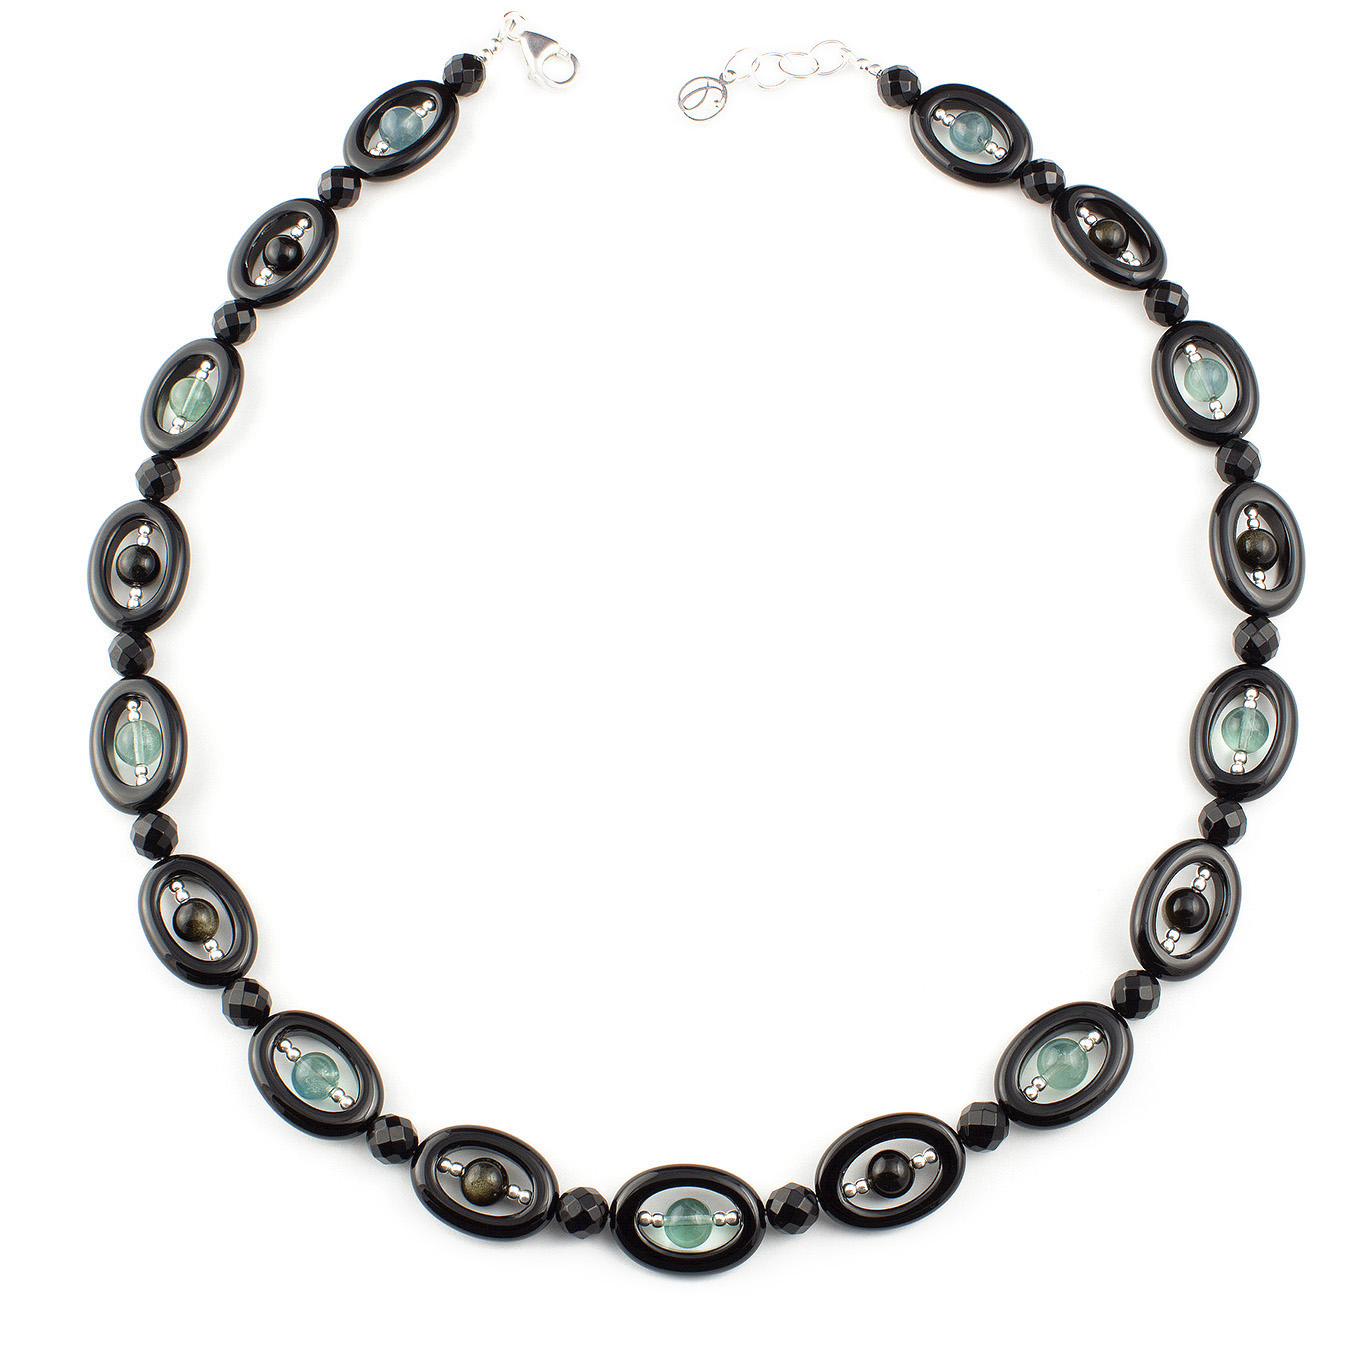 Customized semi-precious gemstone necklace using agate beads